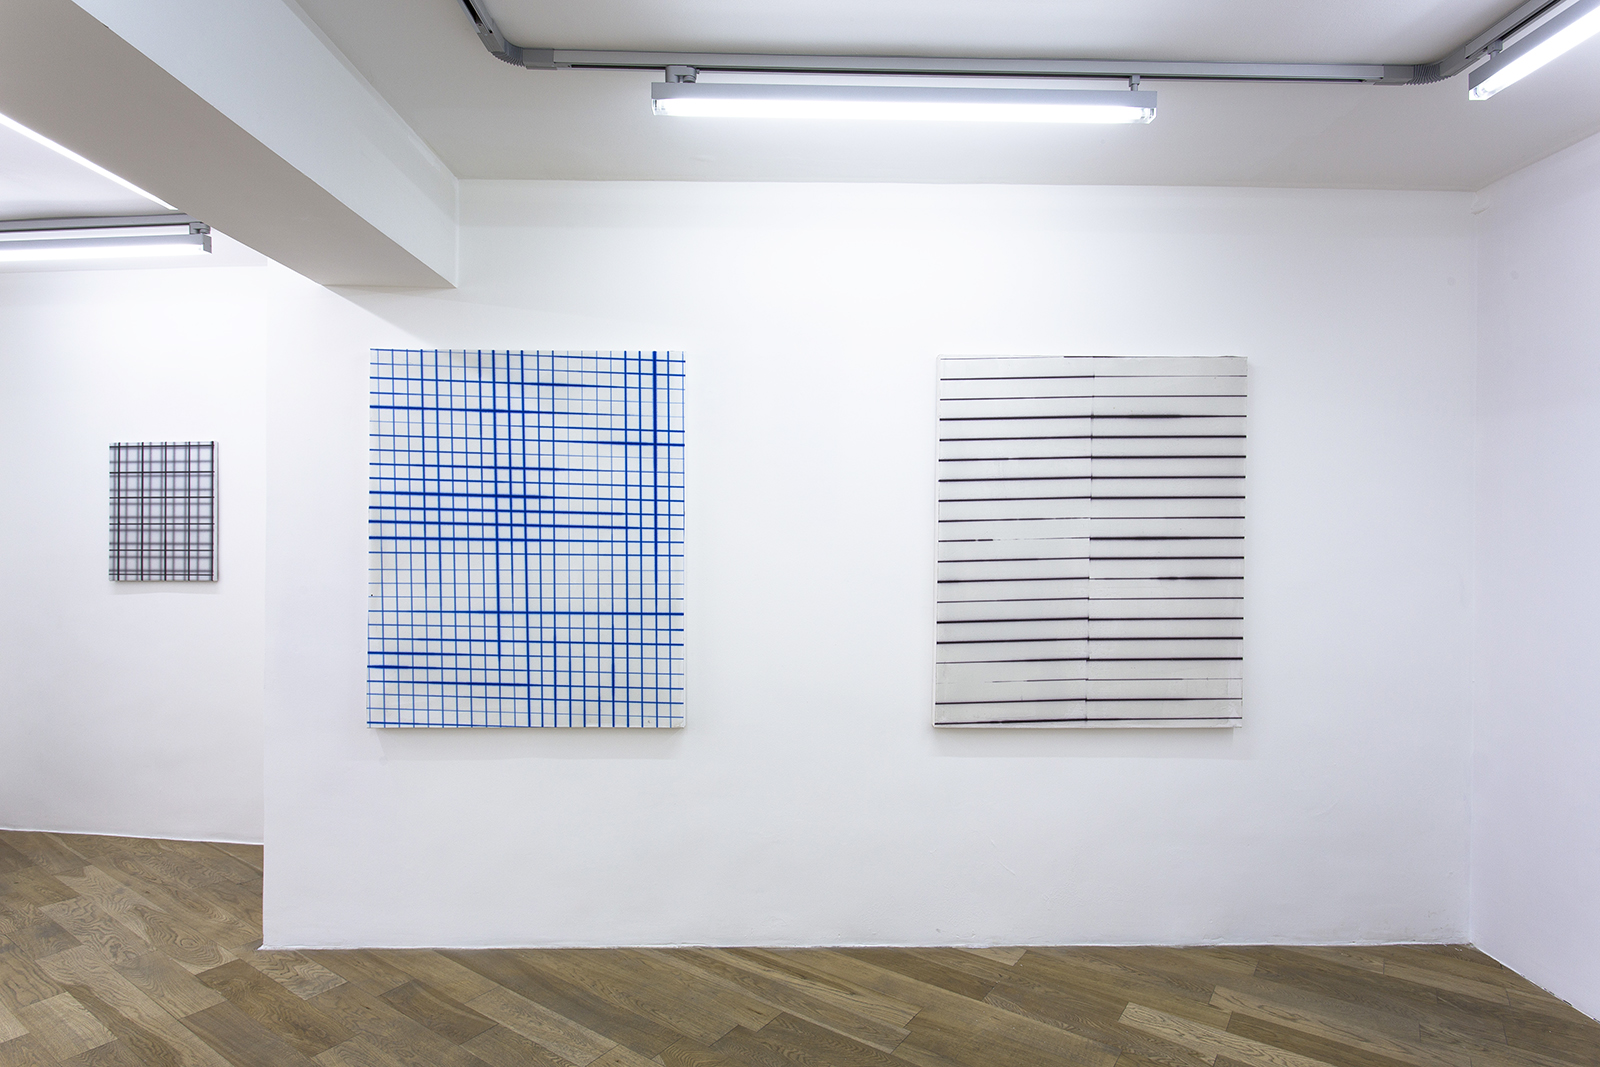 Tendency to movement, Thomas Baumann, exhibition view, June 2015